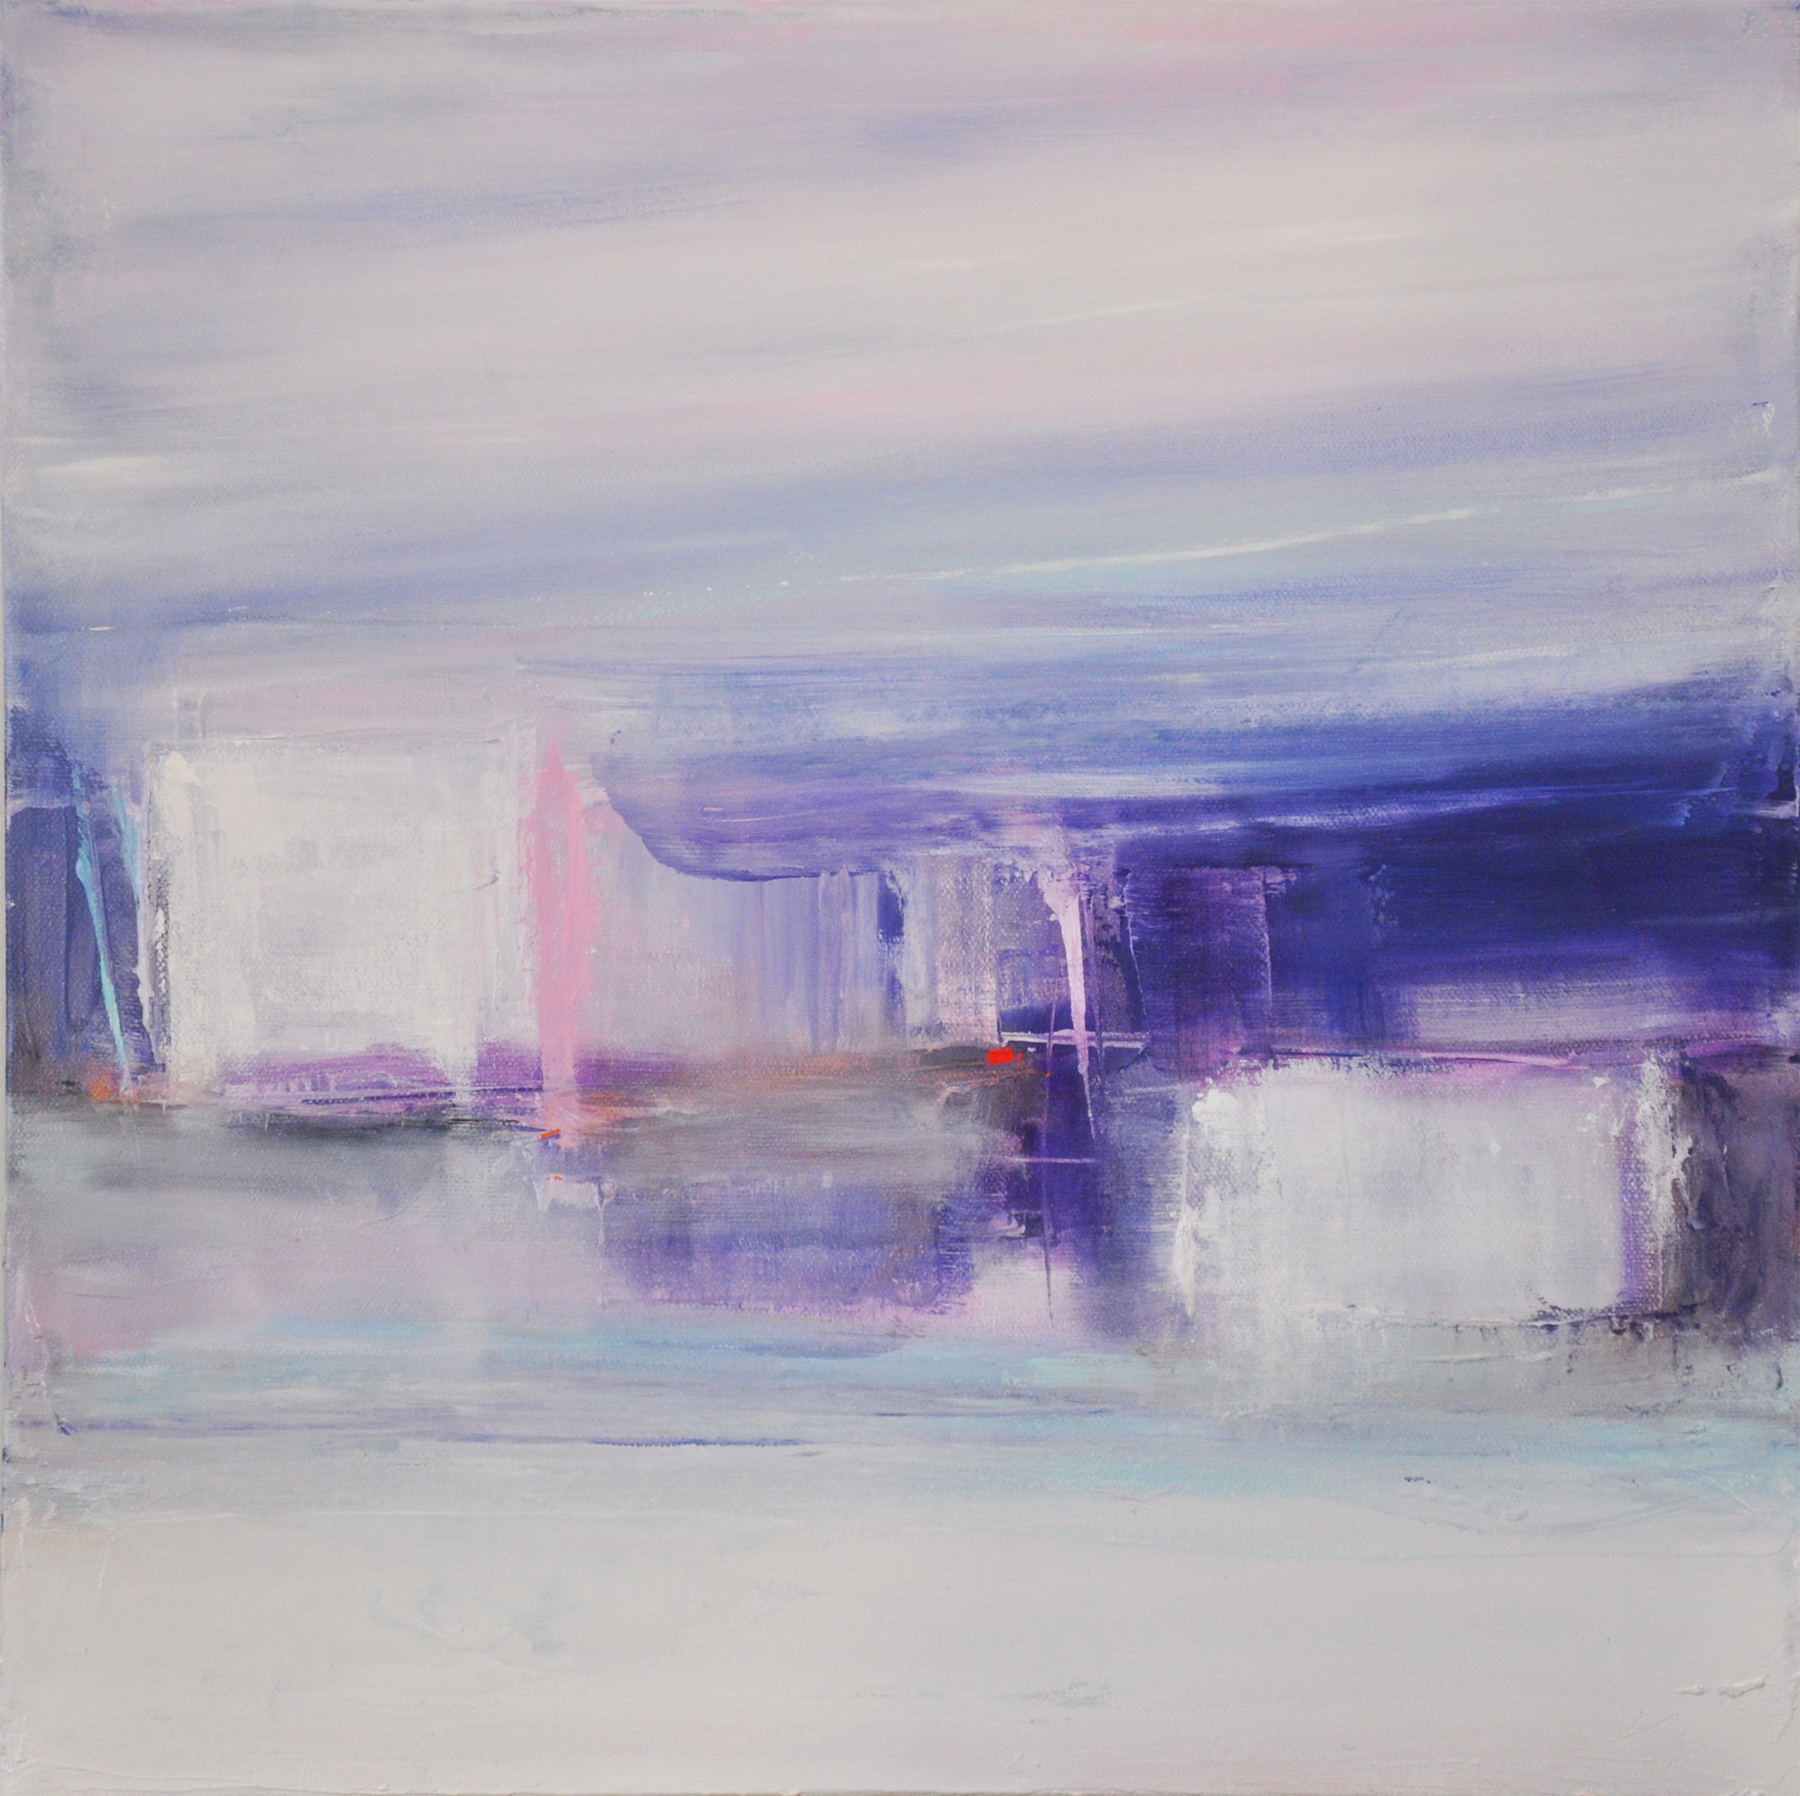 Beatrice Dauge Winter II oil 16x16 inches framed 2013